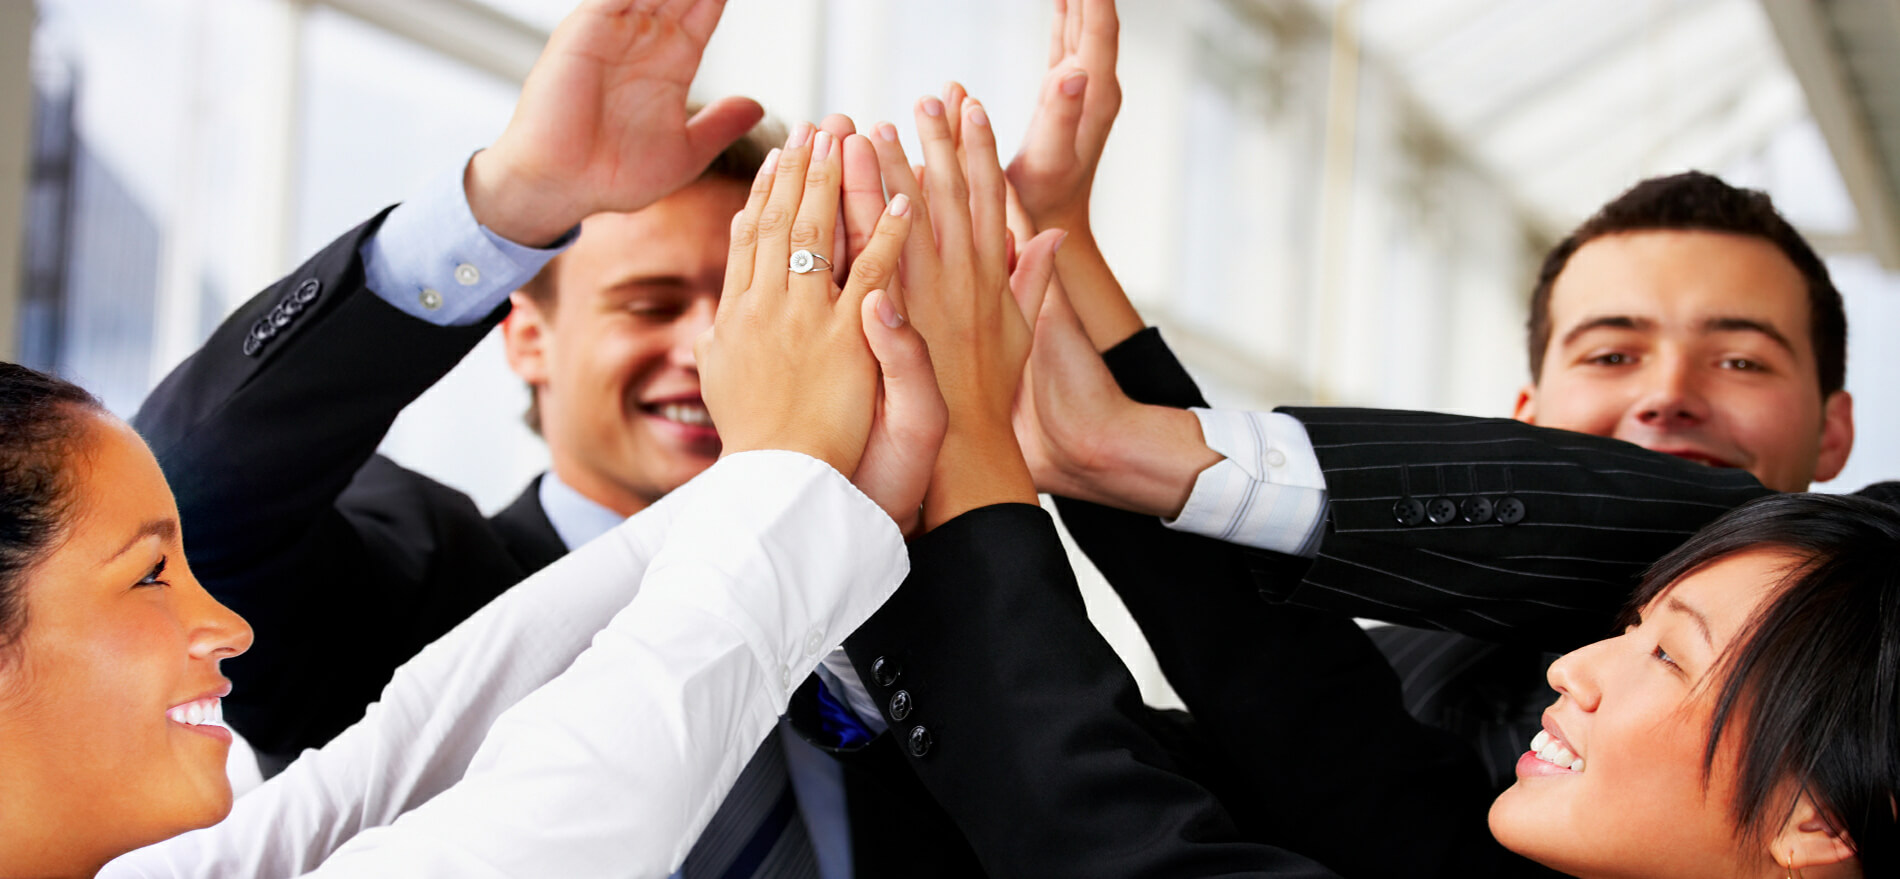 team building in the modern business world essay The first phase is construct during this forming phase persons seek to make a safe environment for their interactions and they set up basic standards for rank.